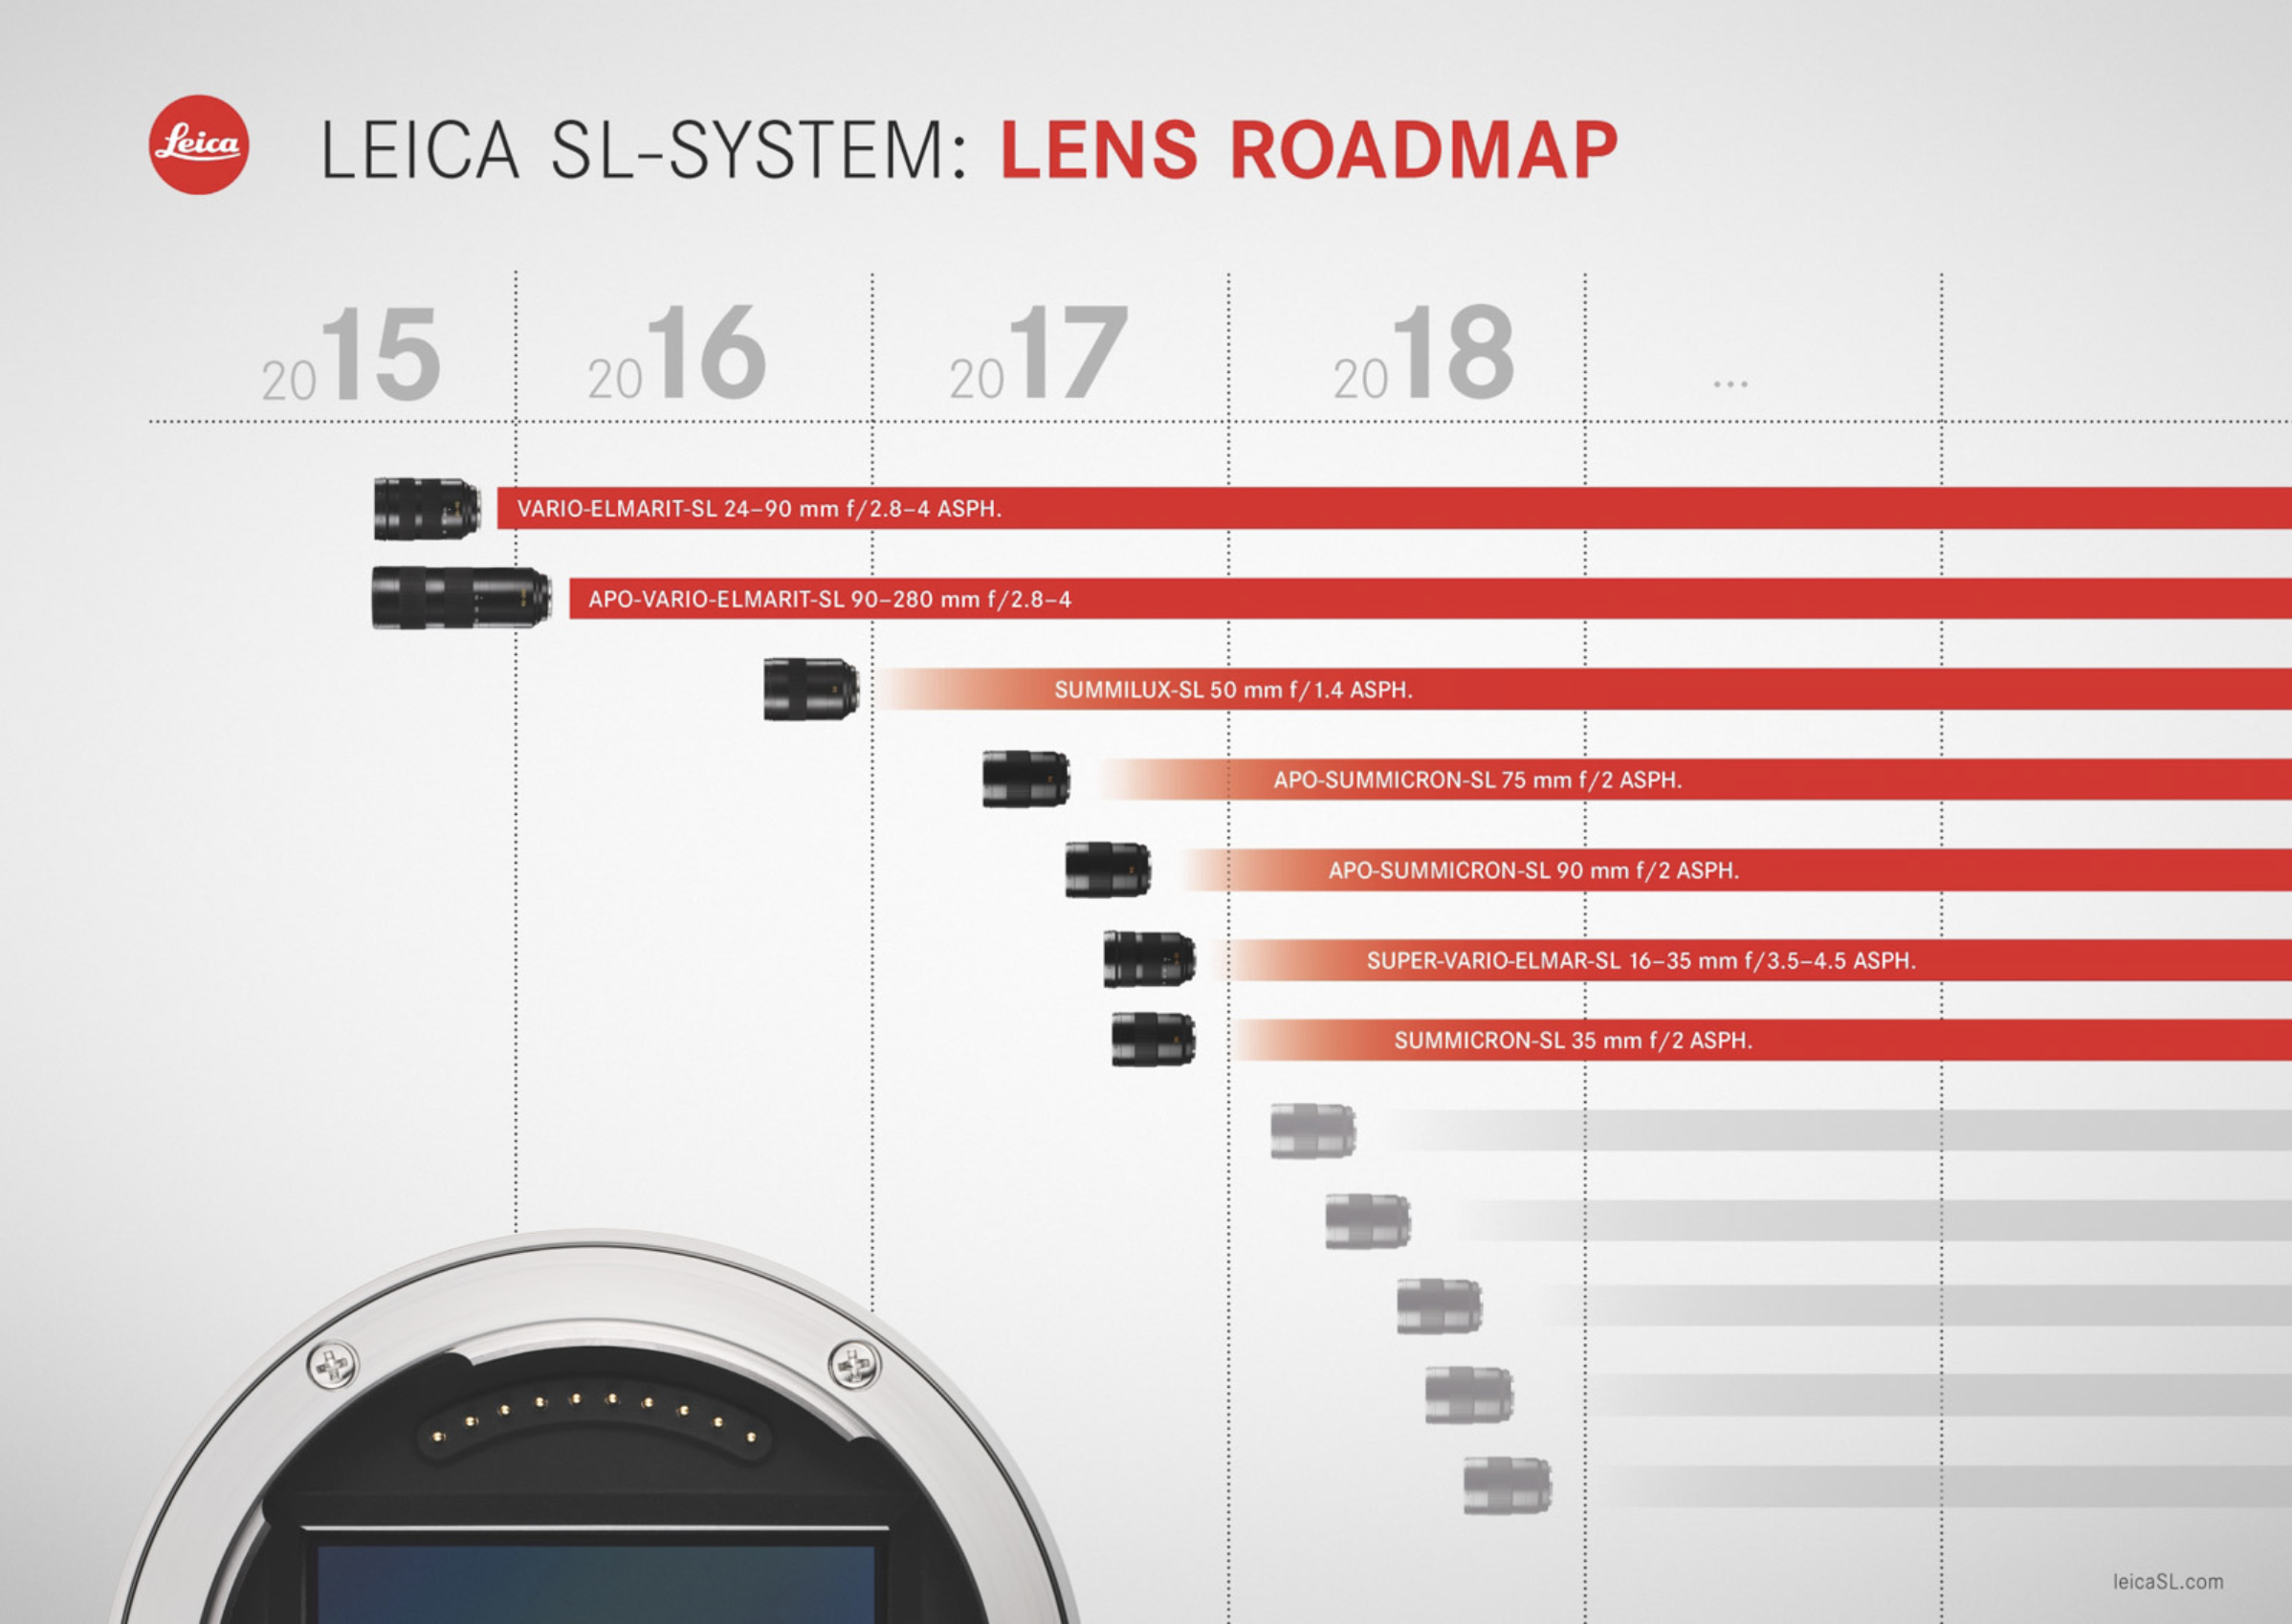 Leica SL System Lens Roadmap, as of September 2016